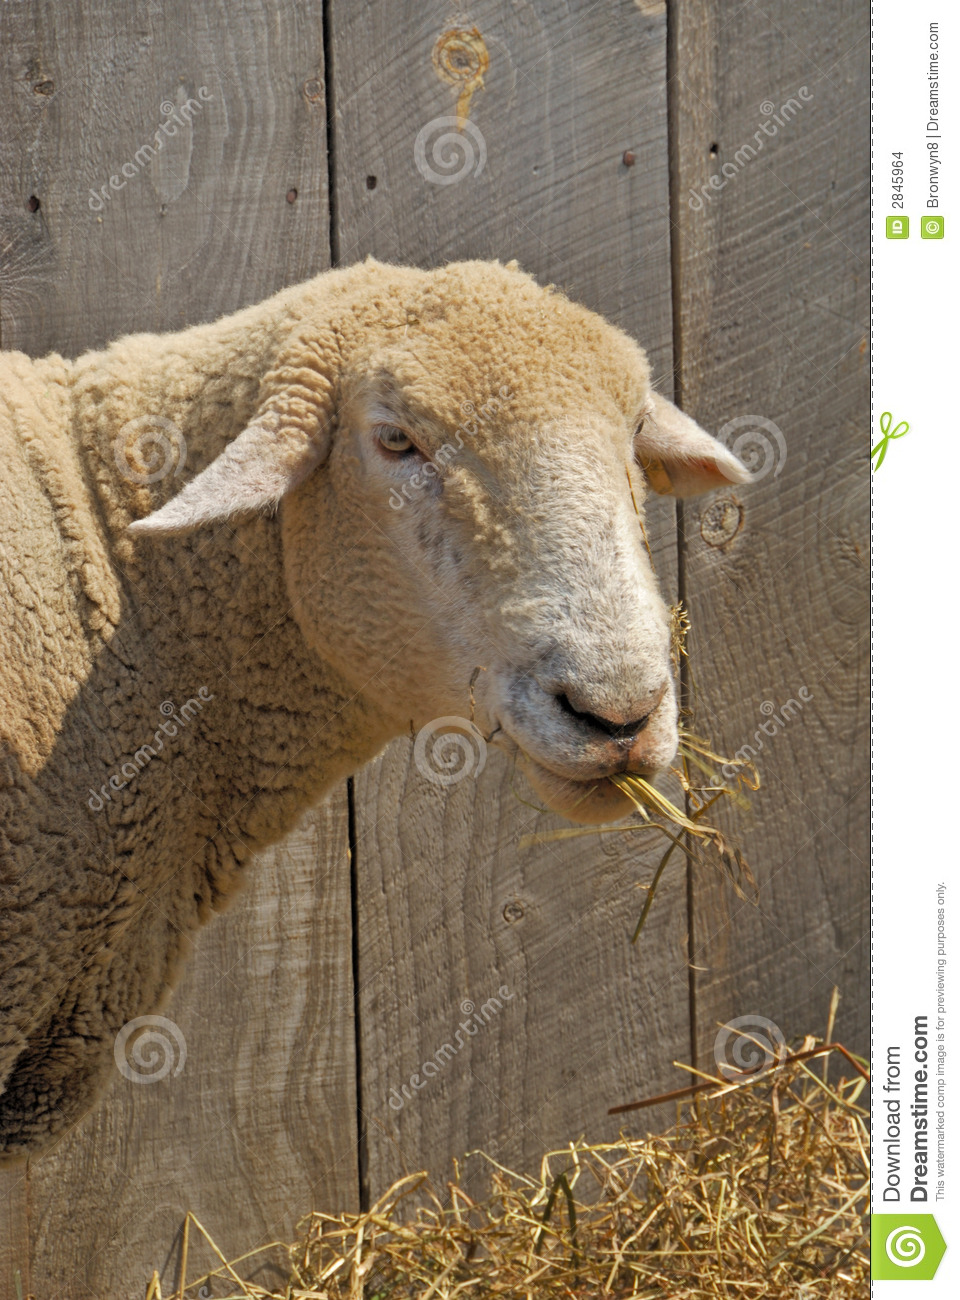 How To Draw A Sheep Eating Grass